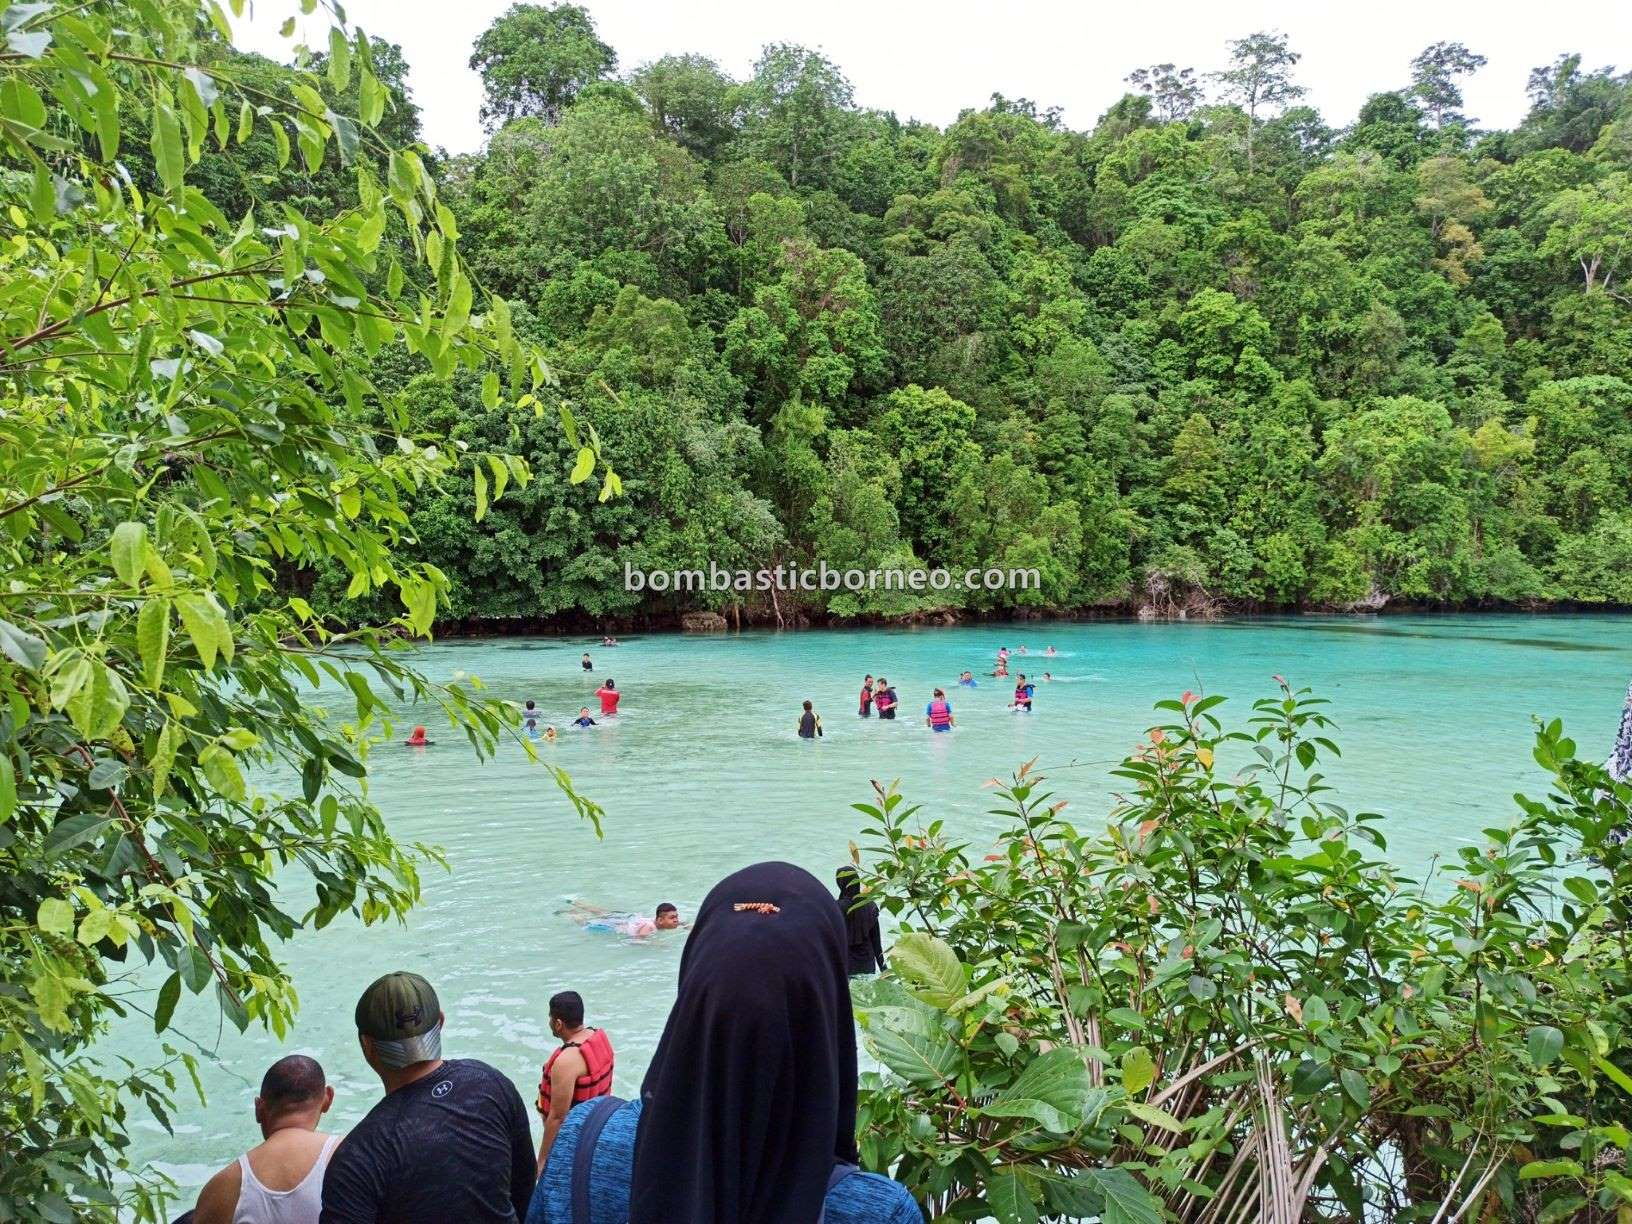 Emerald Pool, Laguna, Lobang Ikan, Derawan Archipelago, Kakaban Island, destination, hidden paradise, holiday, Kalimantan Timur, Pariwisata, Tourist attraction, travel guide, 探索婆罗洲游踪, 印尼东加里曼丹, 卡卡班岛旅游景点,